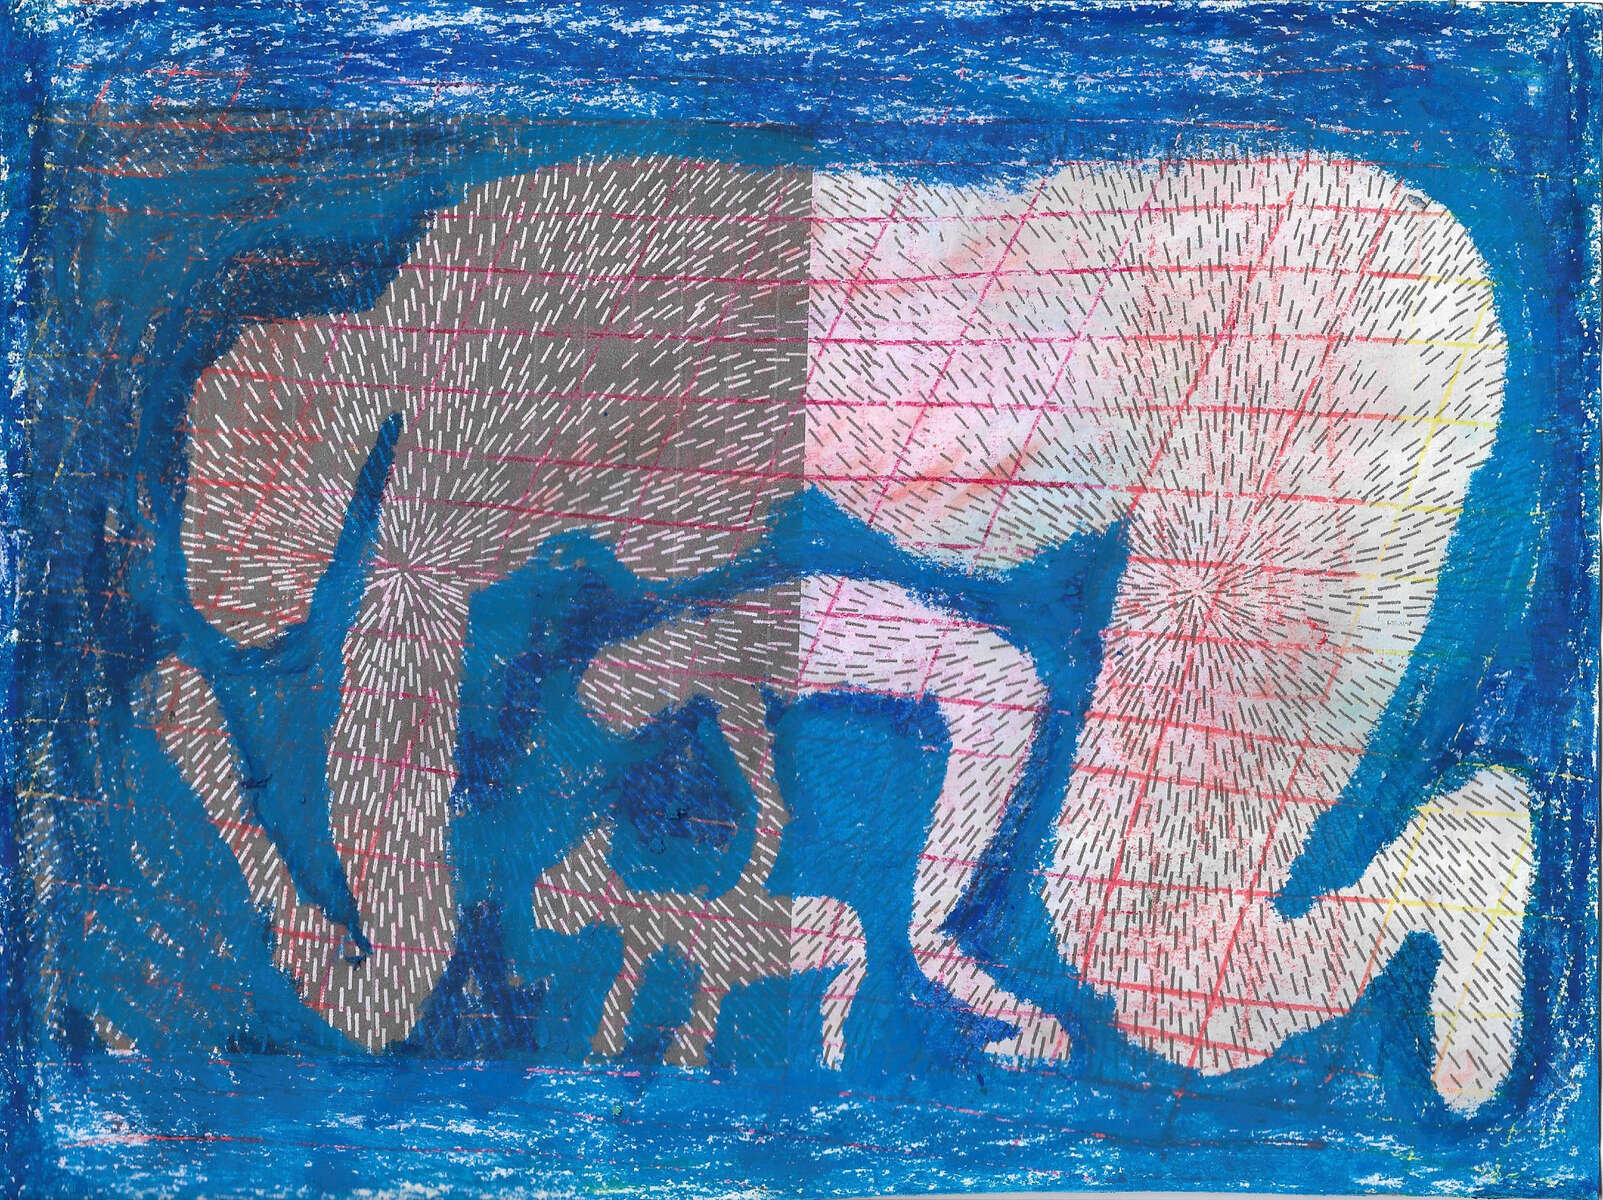 Untitled. 2015-19Inkjet and oil pastel on paper. 8.5 x 11 in.